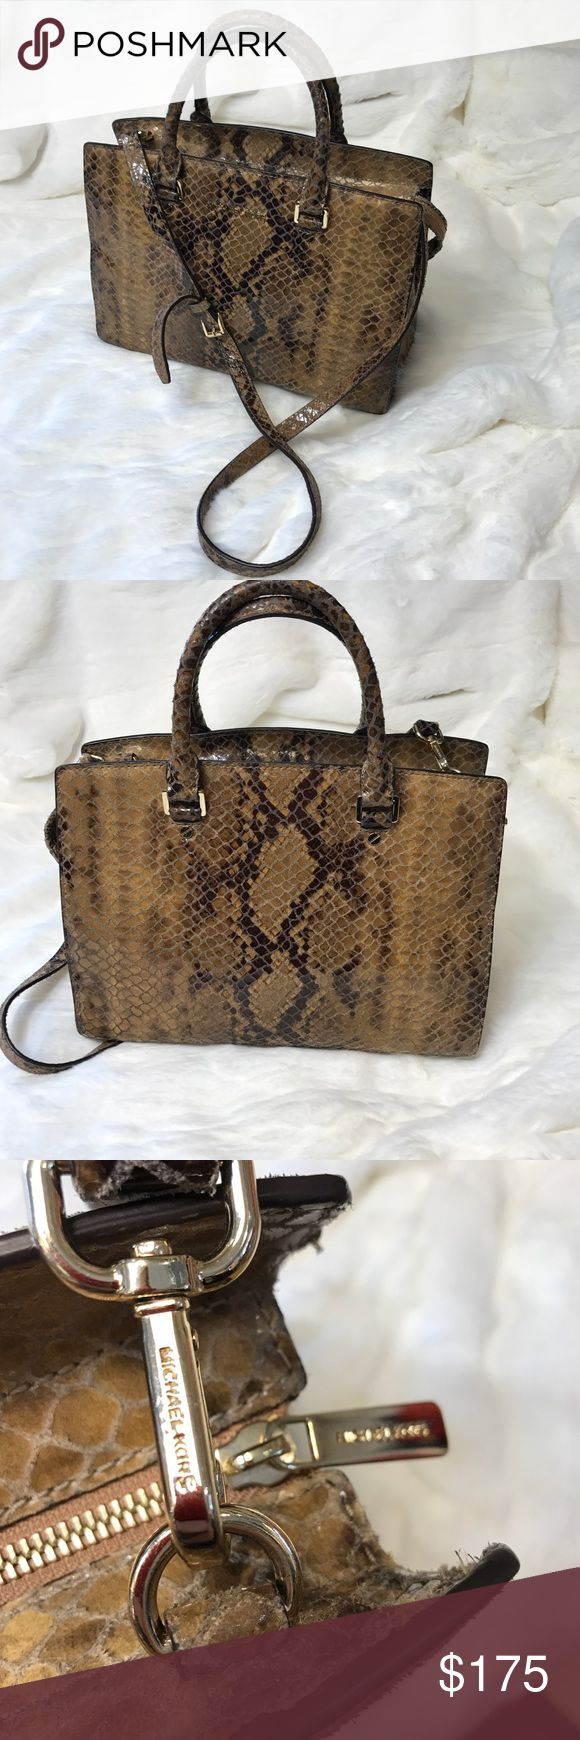 MICHAEL Michael KORS PURSE B122 Slithery snake! Brown and tan shiny and plush snake skin look. This gorgeous handbag has two short handles 14 inches and a 45 inch removable long strap. Soft gold metal detail. Full top zipper. 13x9 inches and about 6 inches wide. In great condition no tears, scuffs, rips. 4 open pockets and one zipper pocket and key tag on the inside. Has pen marks on the inside. Pre-loved. 8226-376 MICHAEL Michael Kors Bags Satchels